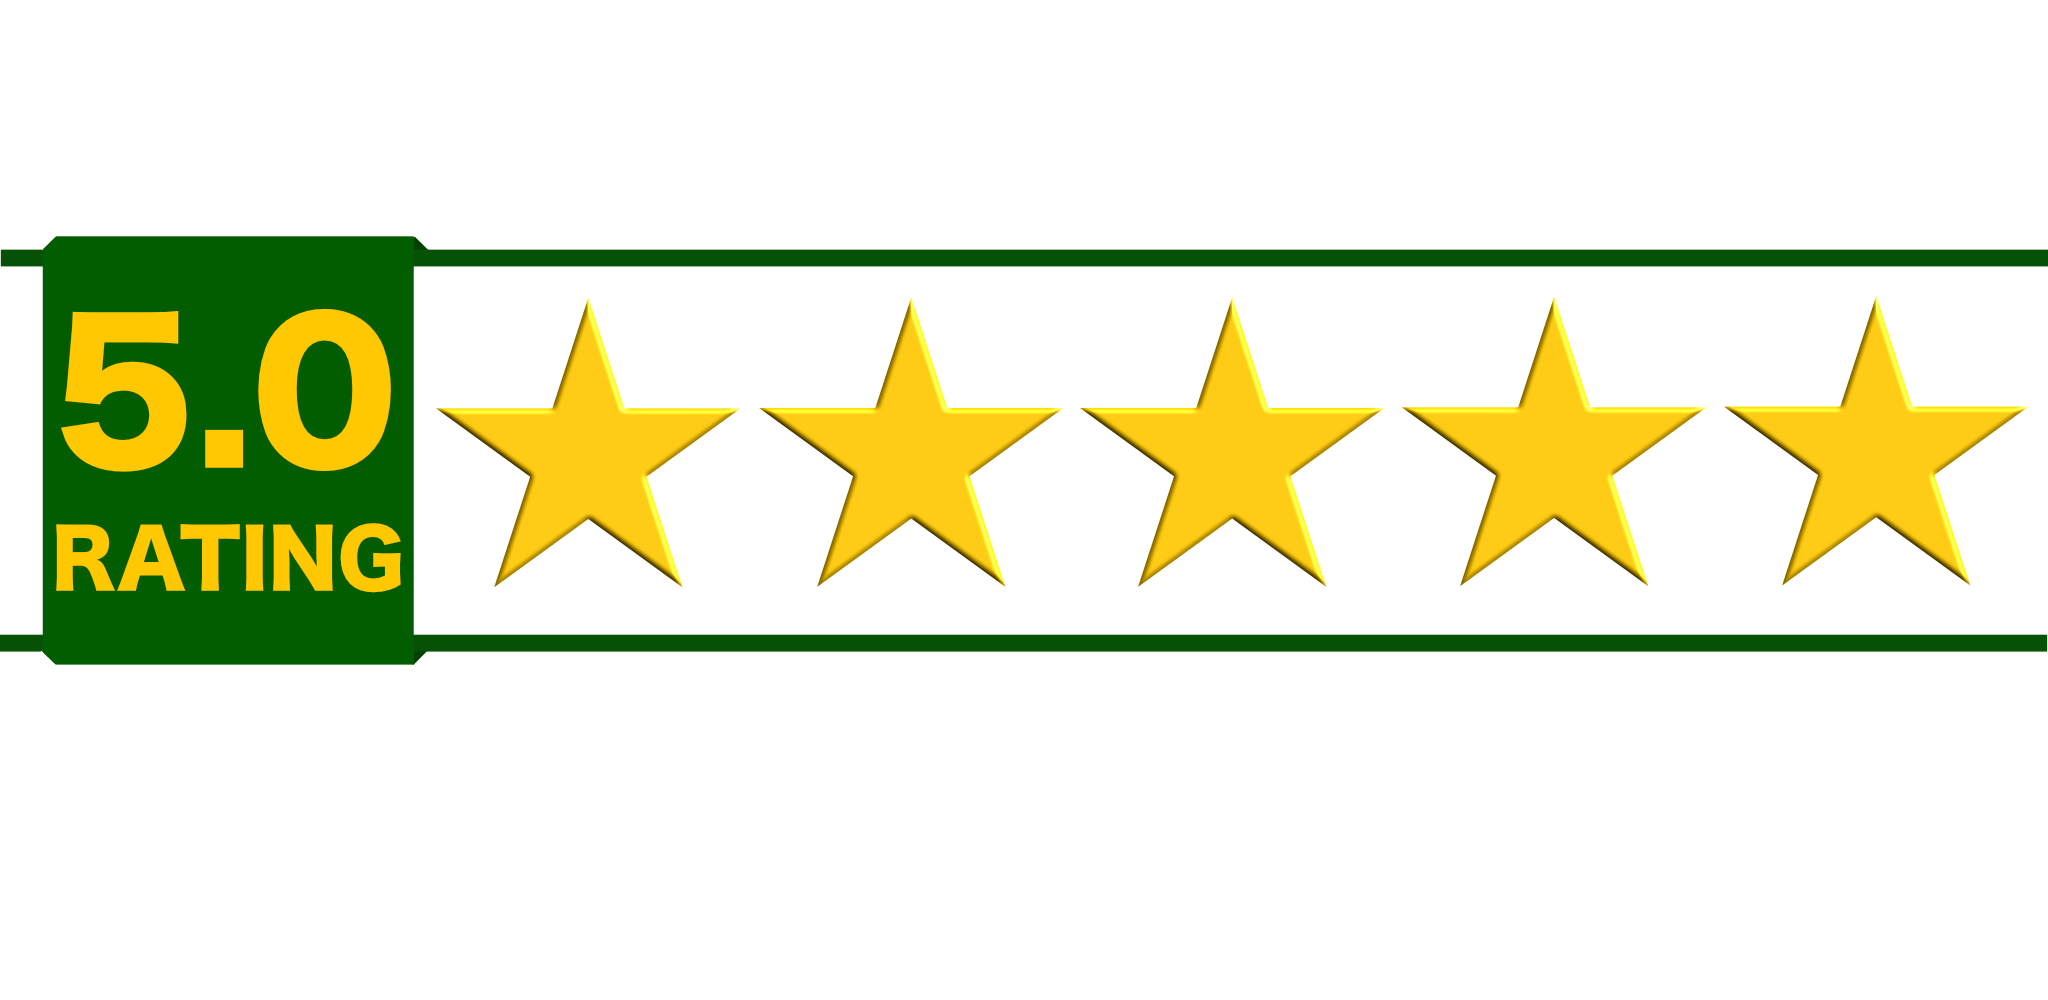 Our 5 star reviews